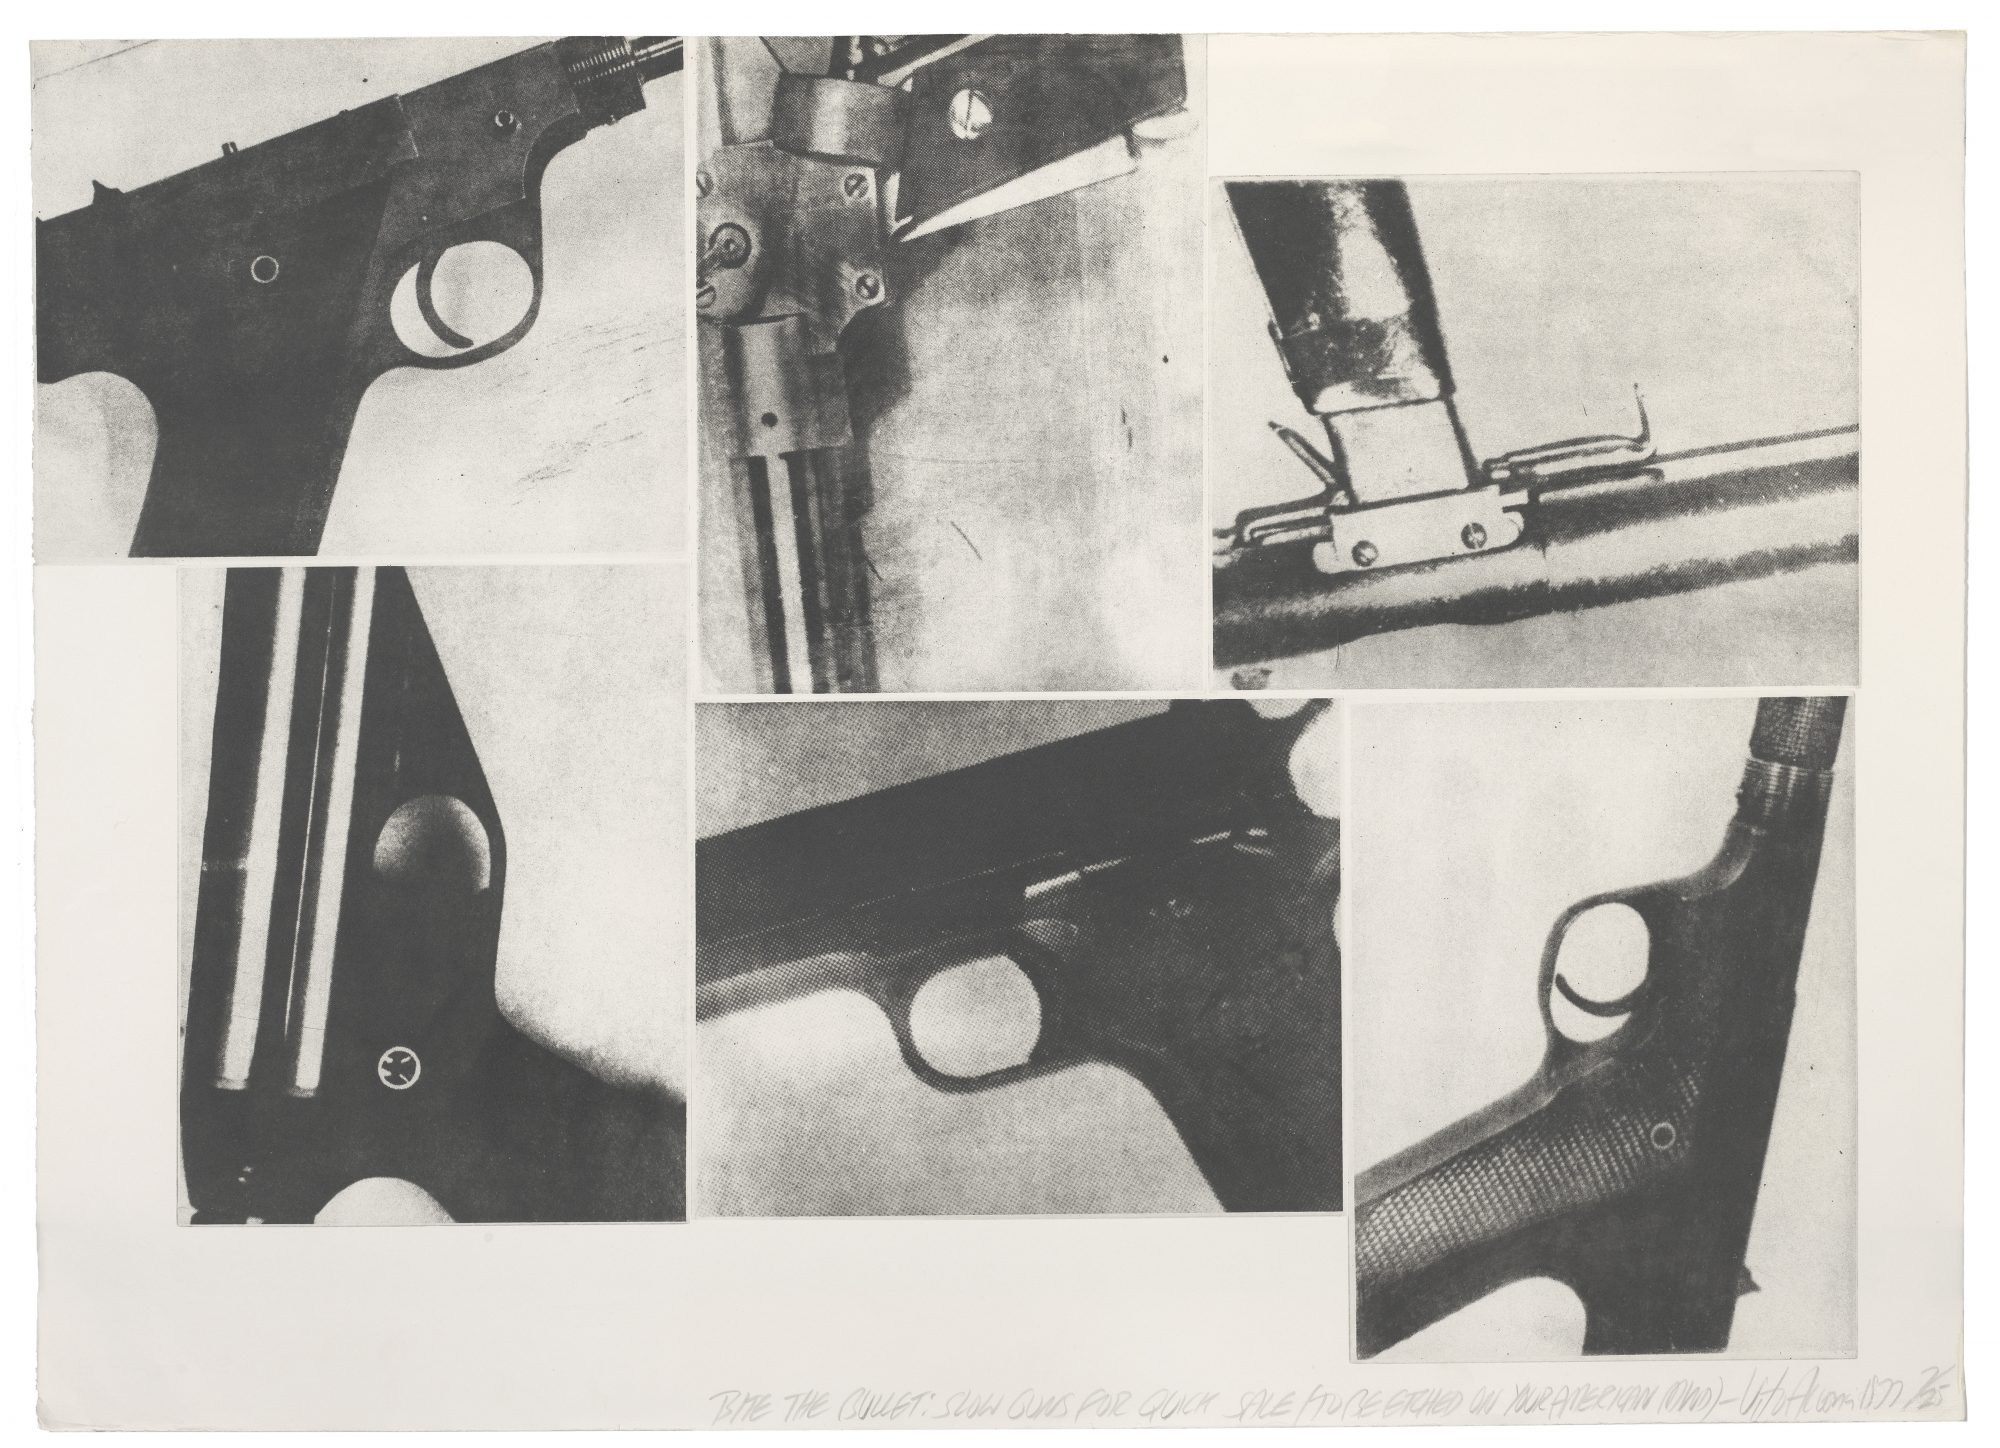 Vito Acconci (American, b. 1940) Bite the Bullet. Slow guns for Quick Sale/To be etched on your American Mind, 1977. Photo lithograph on paper, 29 13/16 x 41 7/8 in. Gift of Harvey R. Plonsker '61, Madeleine P. Plonsker and Edward M. Plonsker '86, M.2007.21